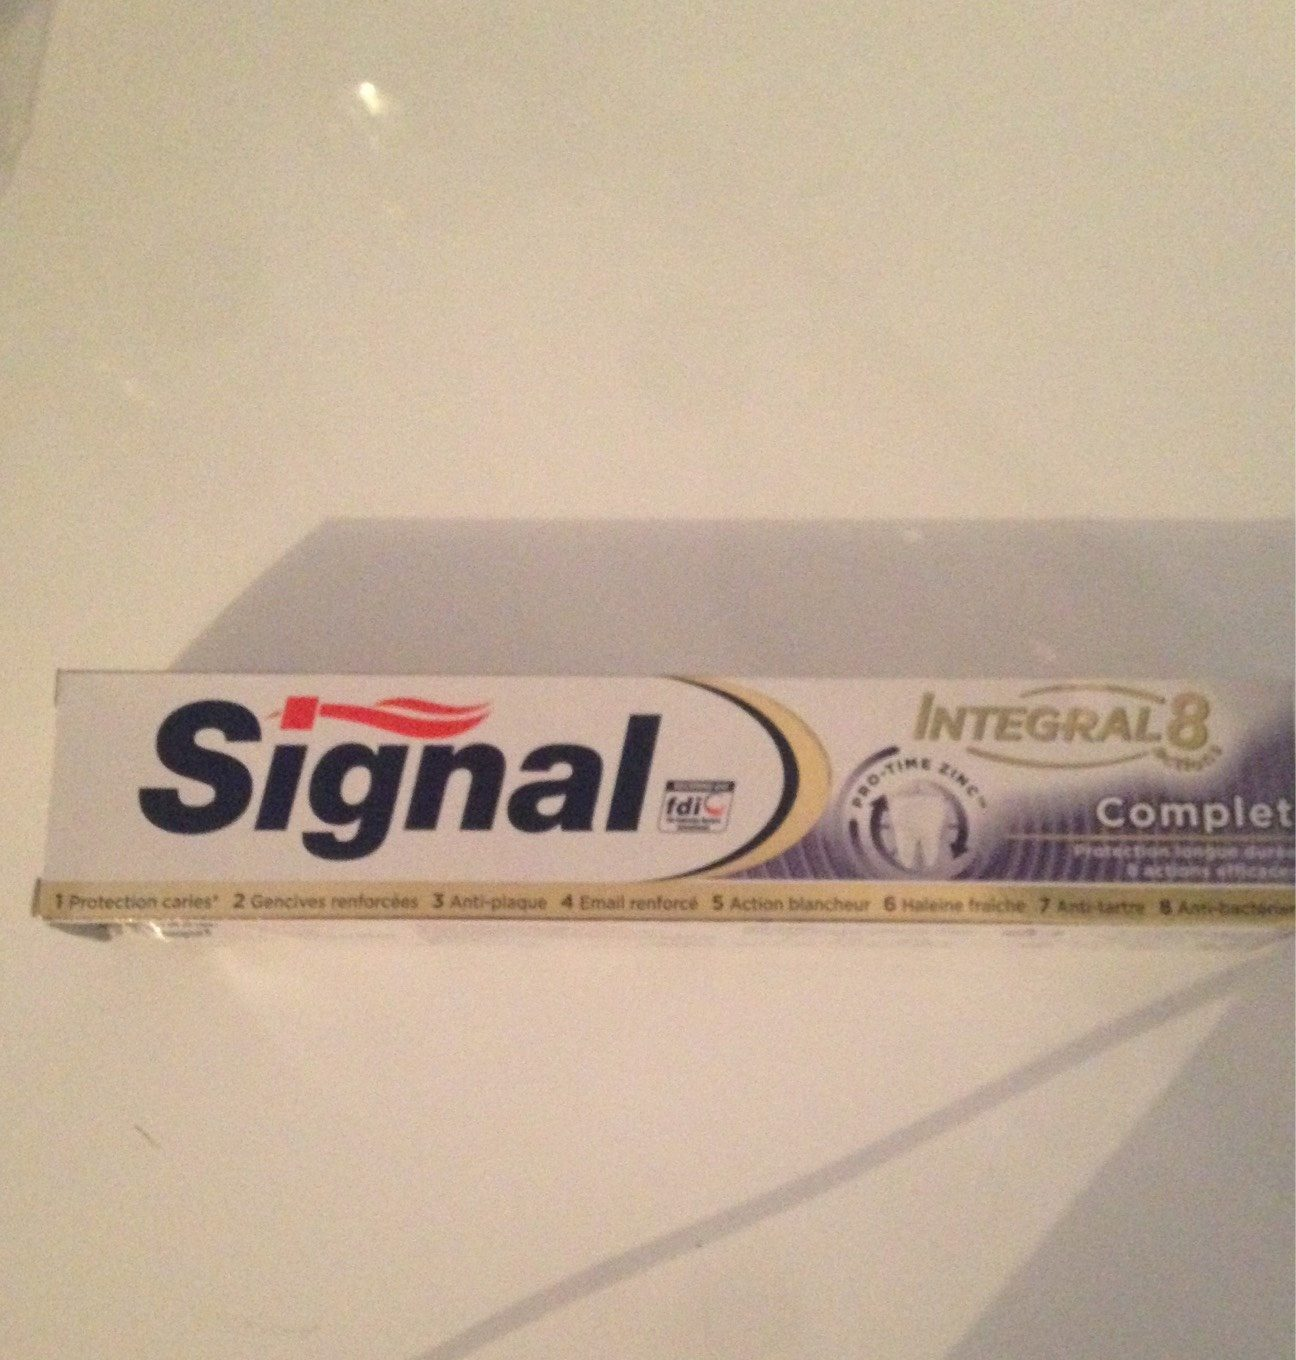 Dentifrice integral 8 actions - Product